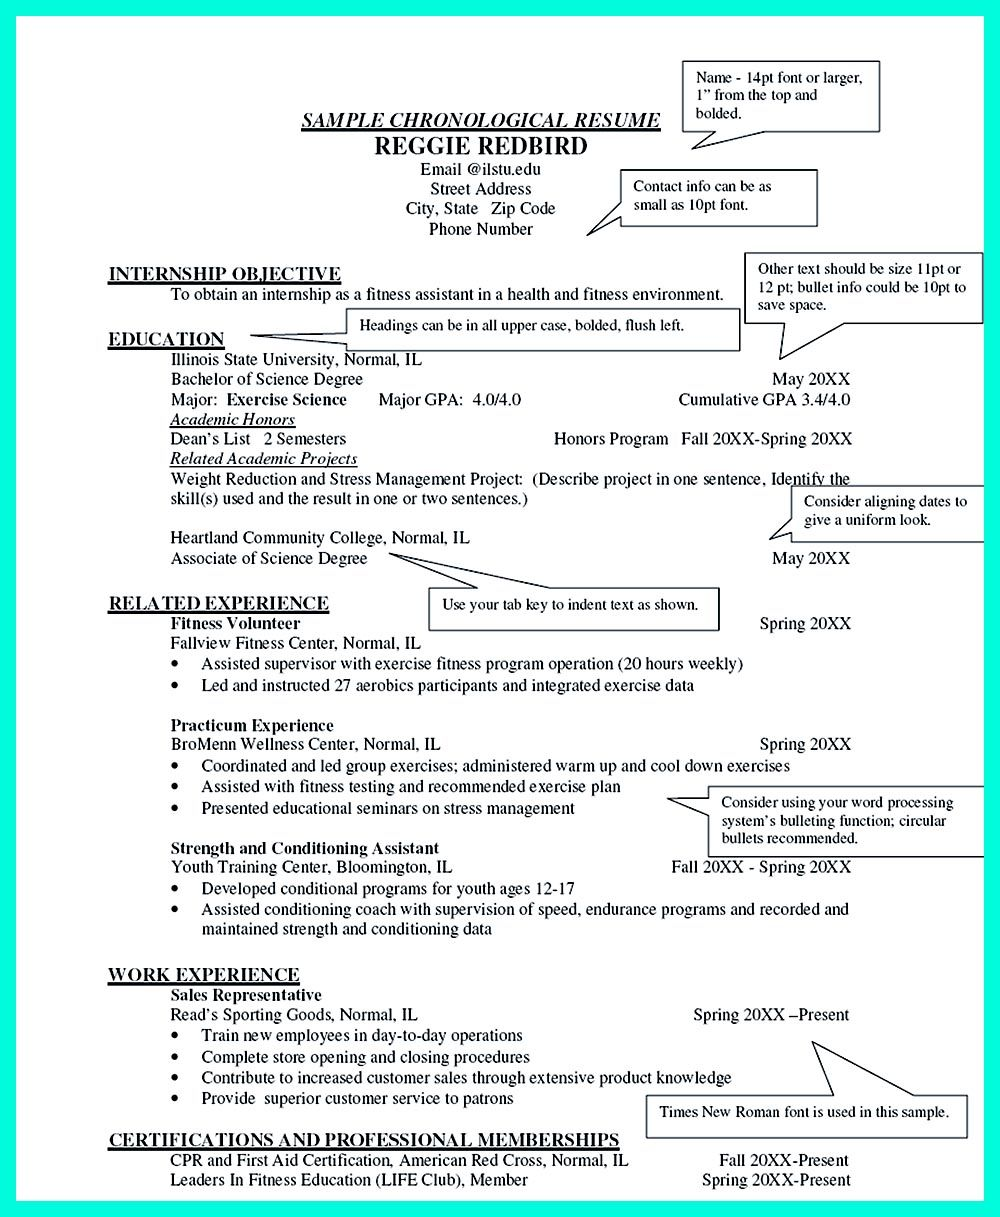 How To Write A Good Resume Amusing Chronological Resume Is Neededpeople In Making Them Understand